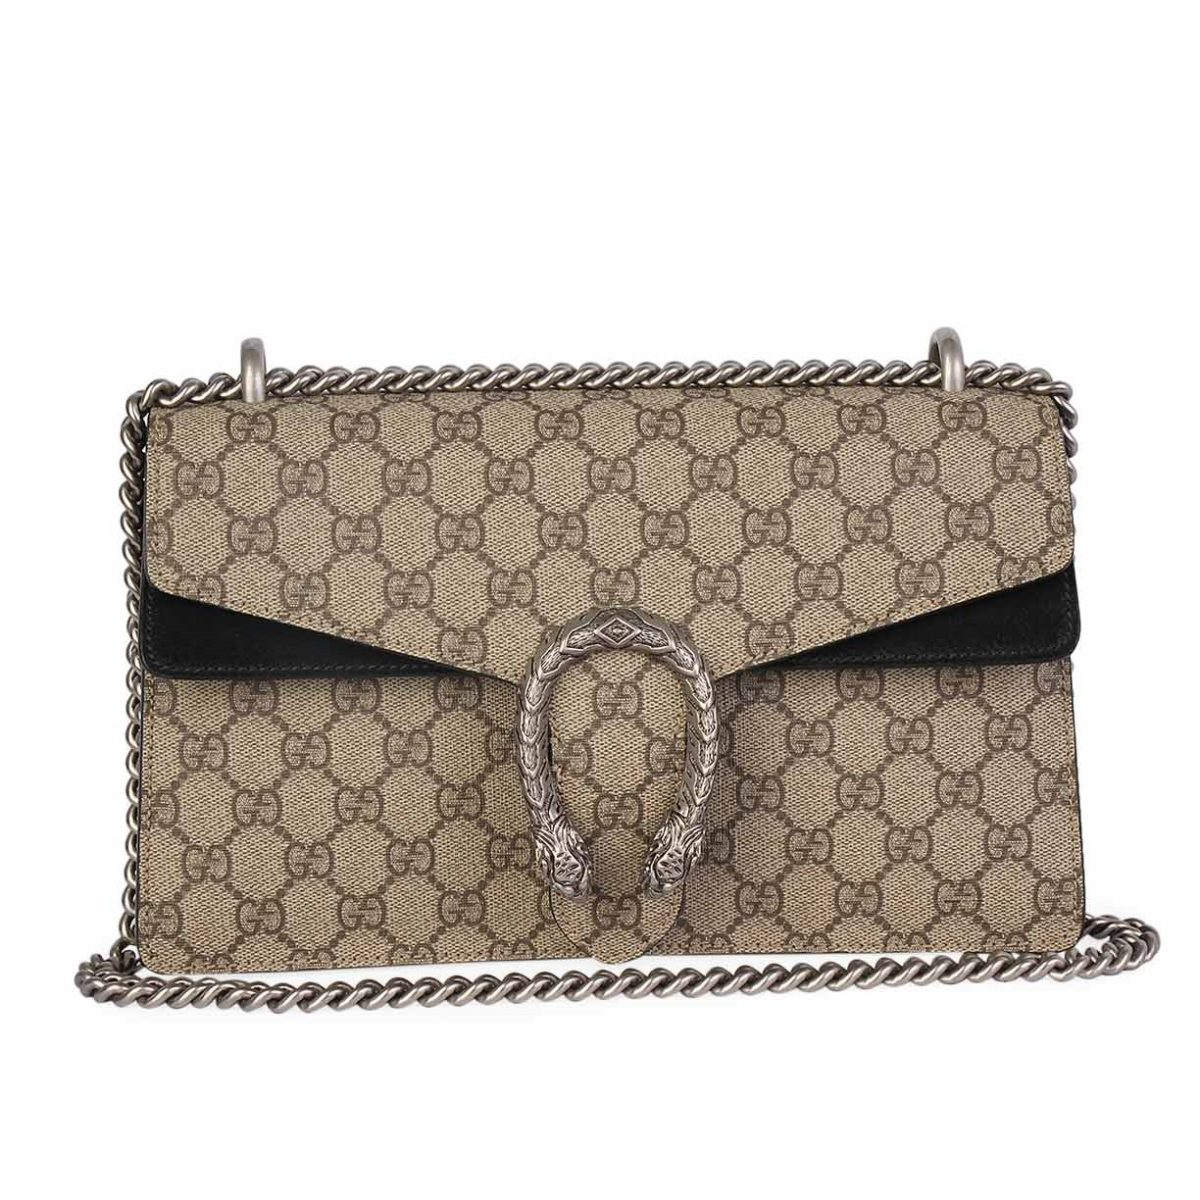 58fc4b43daae GUCCI GG Supreme Dionysus Small Shoulder Bag Beige | Luxity